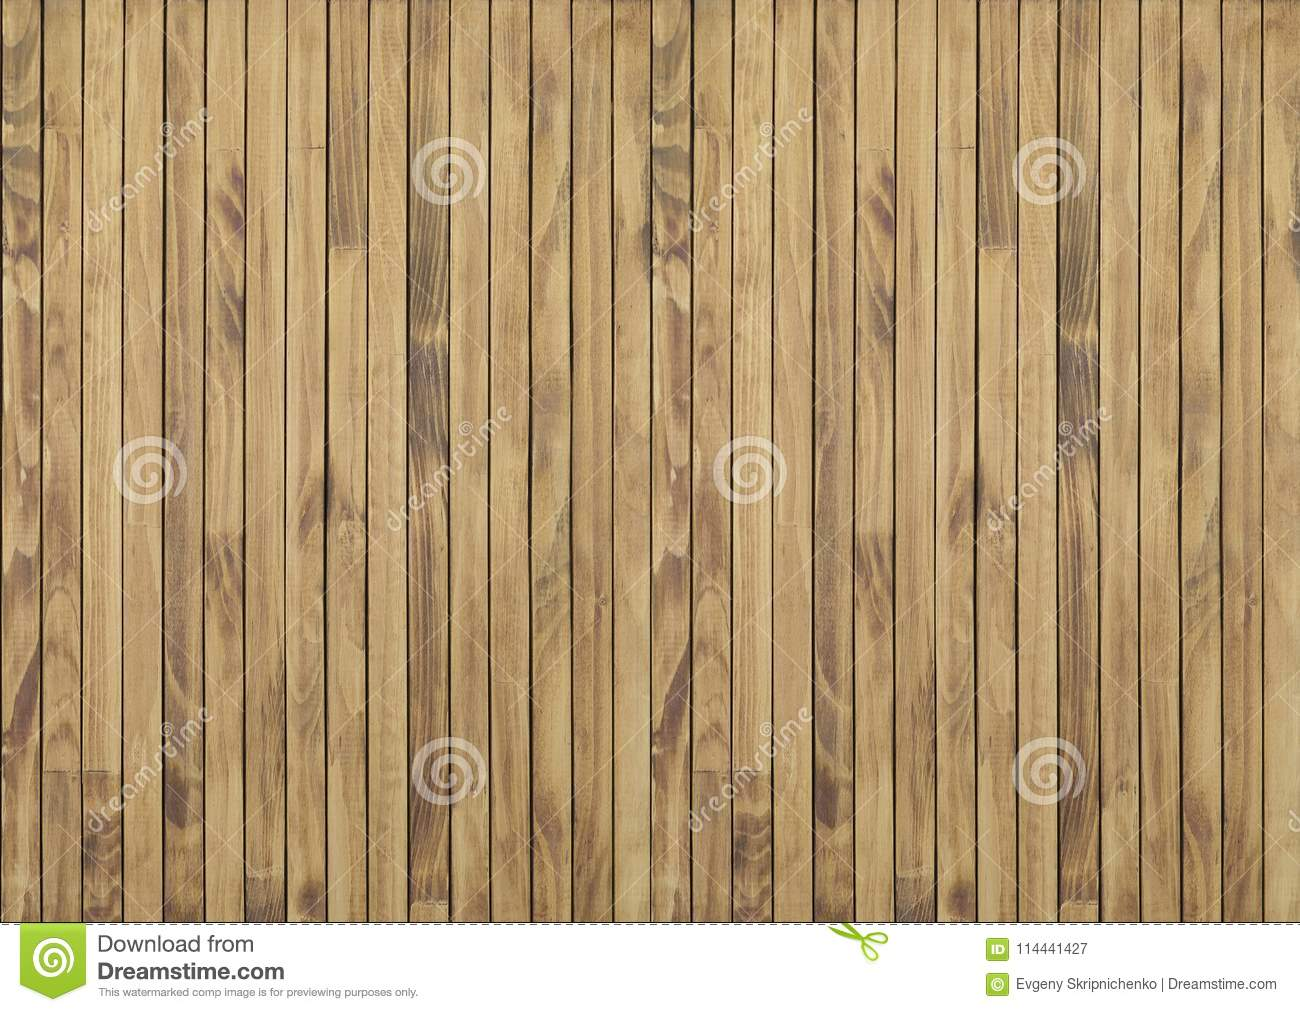 Wooden Texture Plank Wall Interior Pattern Stock Image - Image of ...